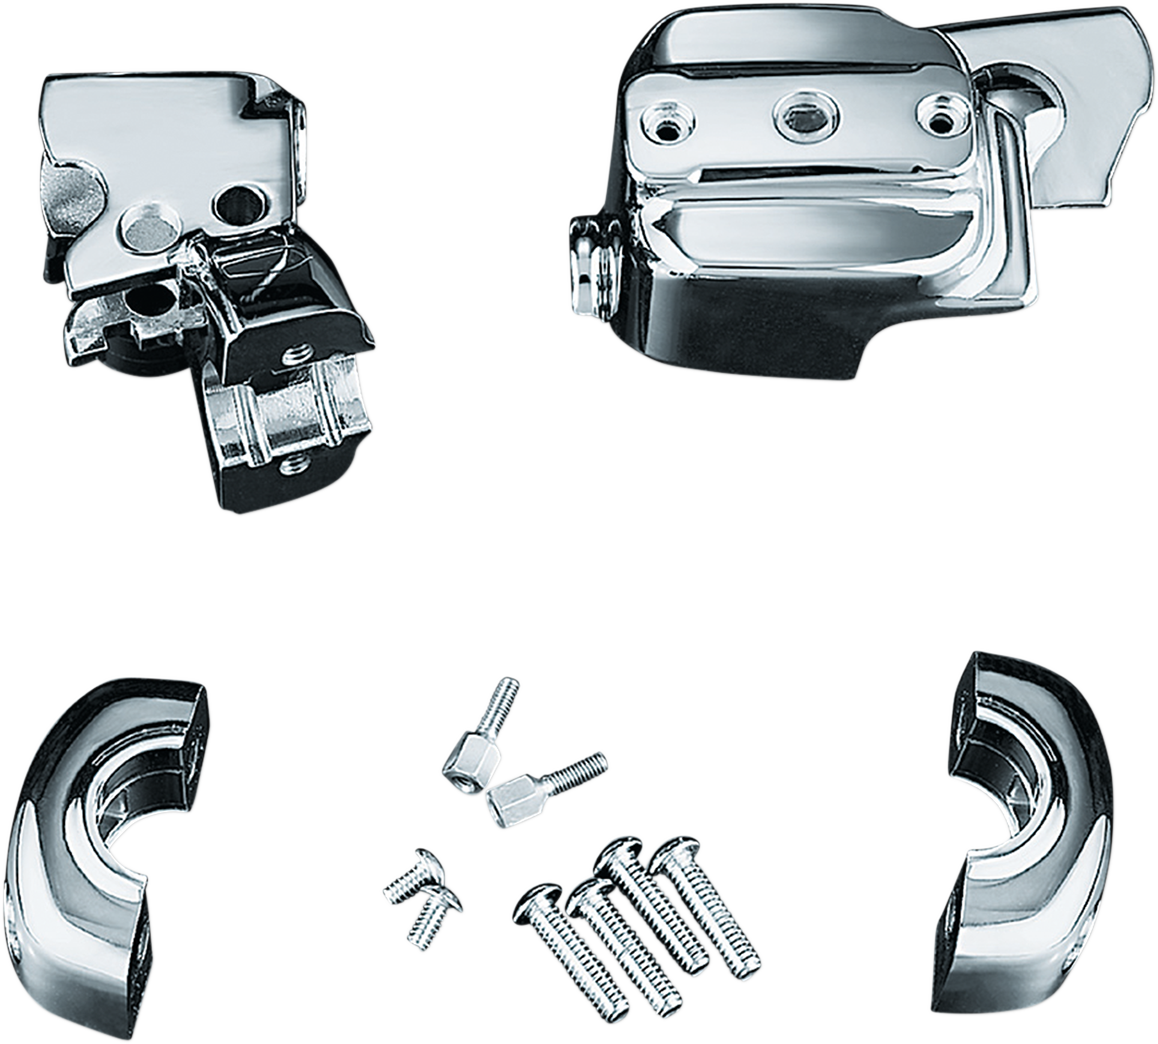 Kuryakyn 9126 Chrome Handlebar Control Cover Kit for 96-17 Harley Dyna Softail